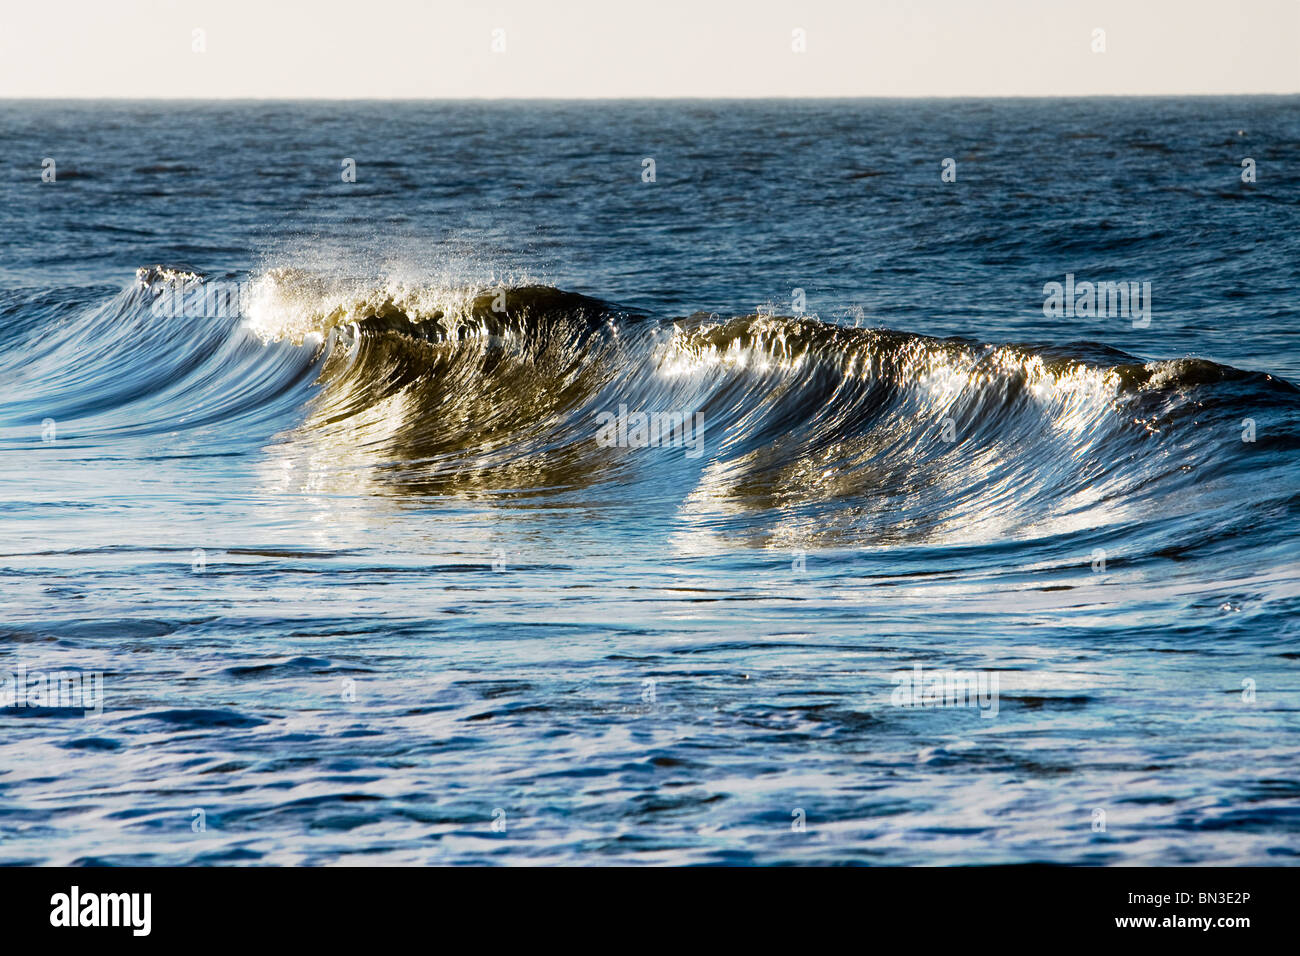 Wave breaking in North Sea, Sylt, Germany, close-up - Stock Image